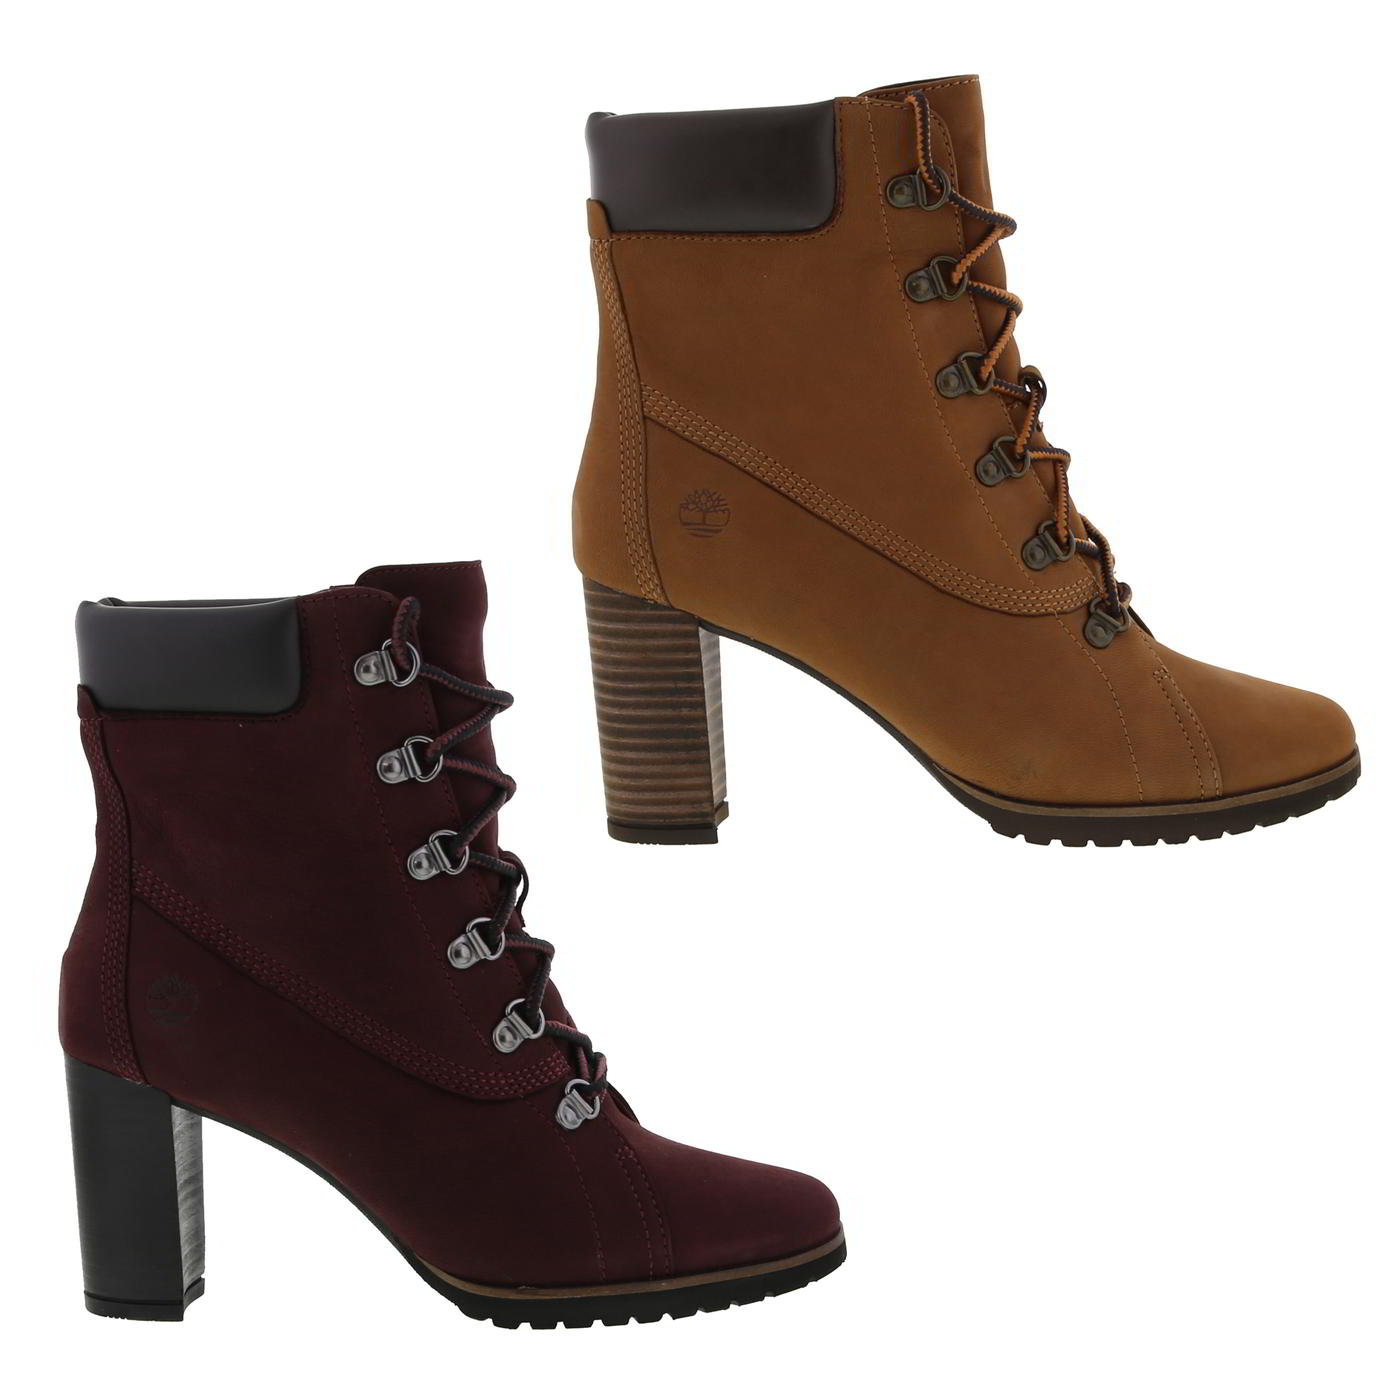 6039c8723d8 Timberland Leslie Anne Womens Ladies High Heel Leather Ankle Boots ...